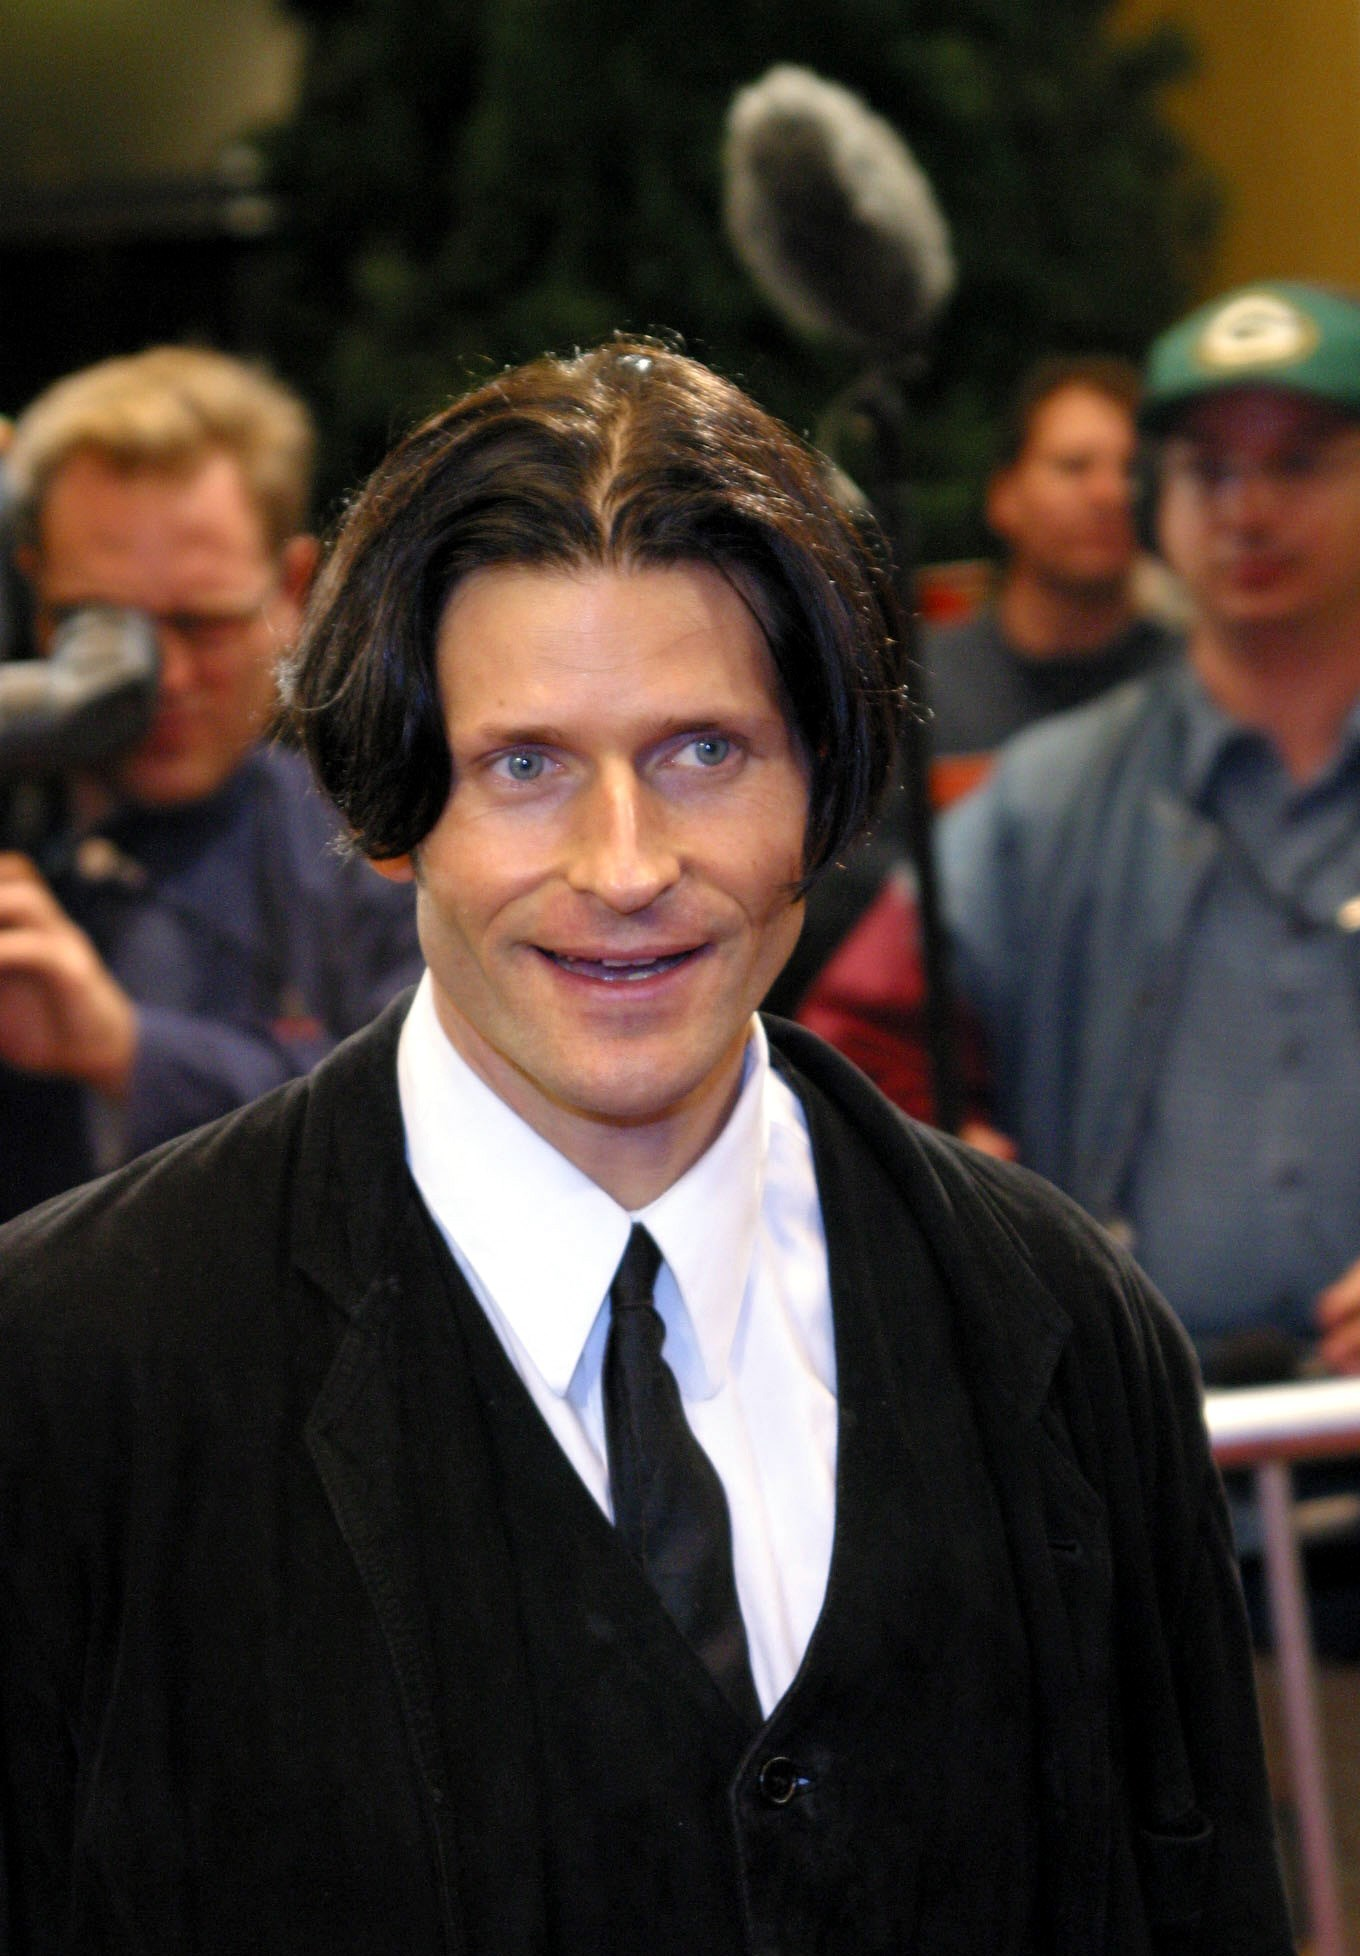 Crispin Glover Known People Famous People News And